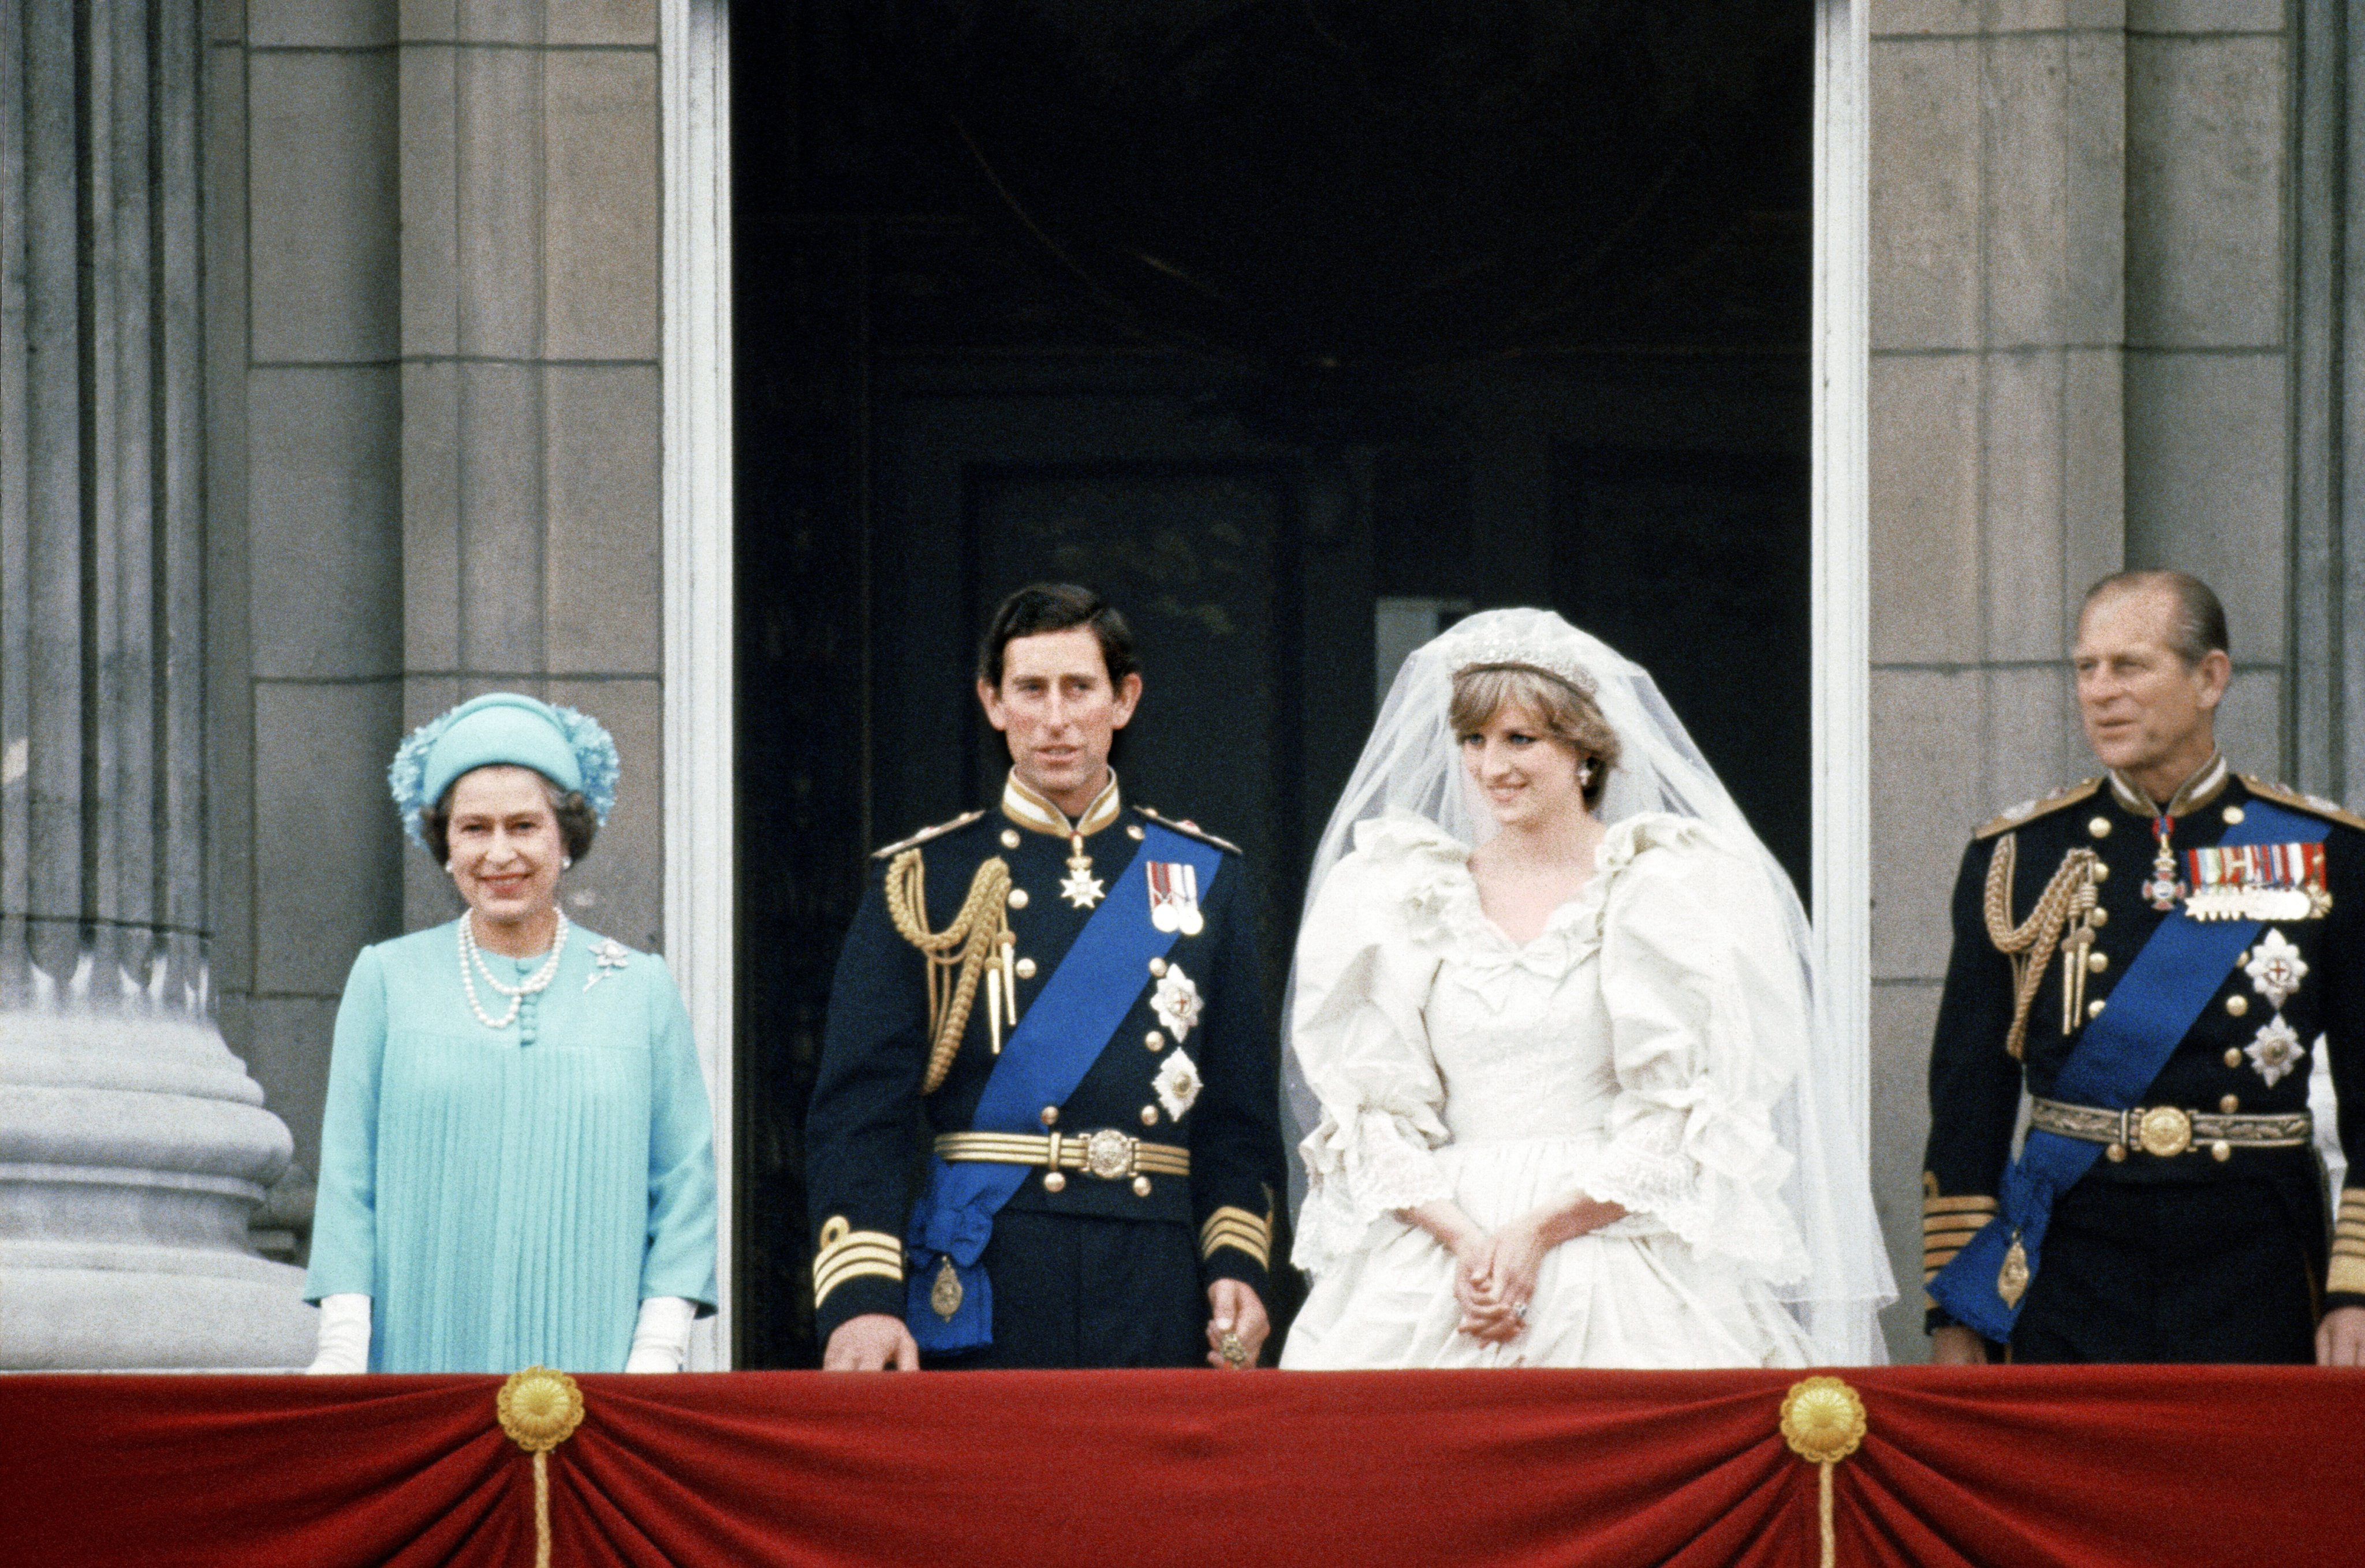 Prince Charles and Lady Diana Spencer with Queen Elizabeth II and Prince Philip on the balcony at Buckingham Palace